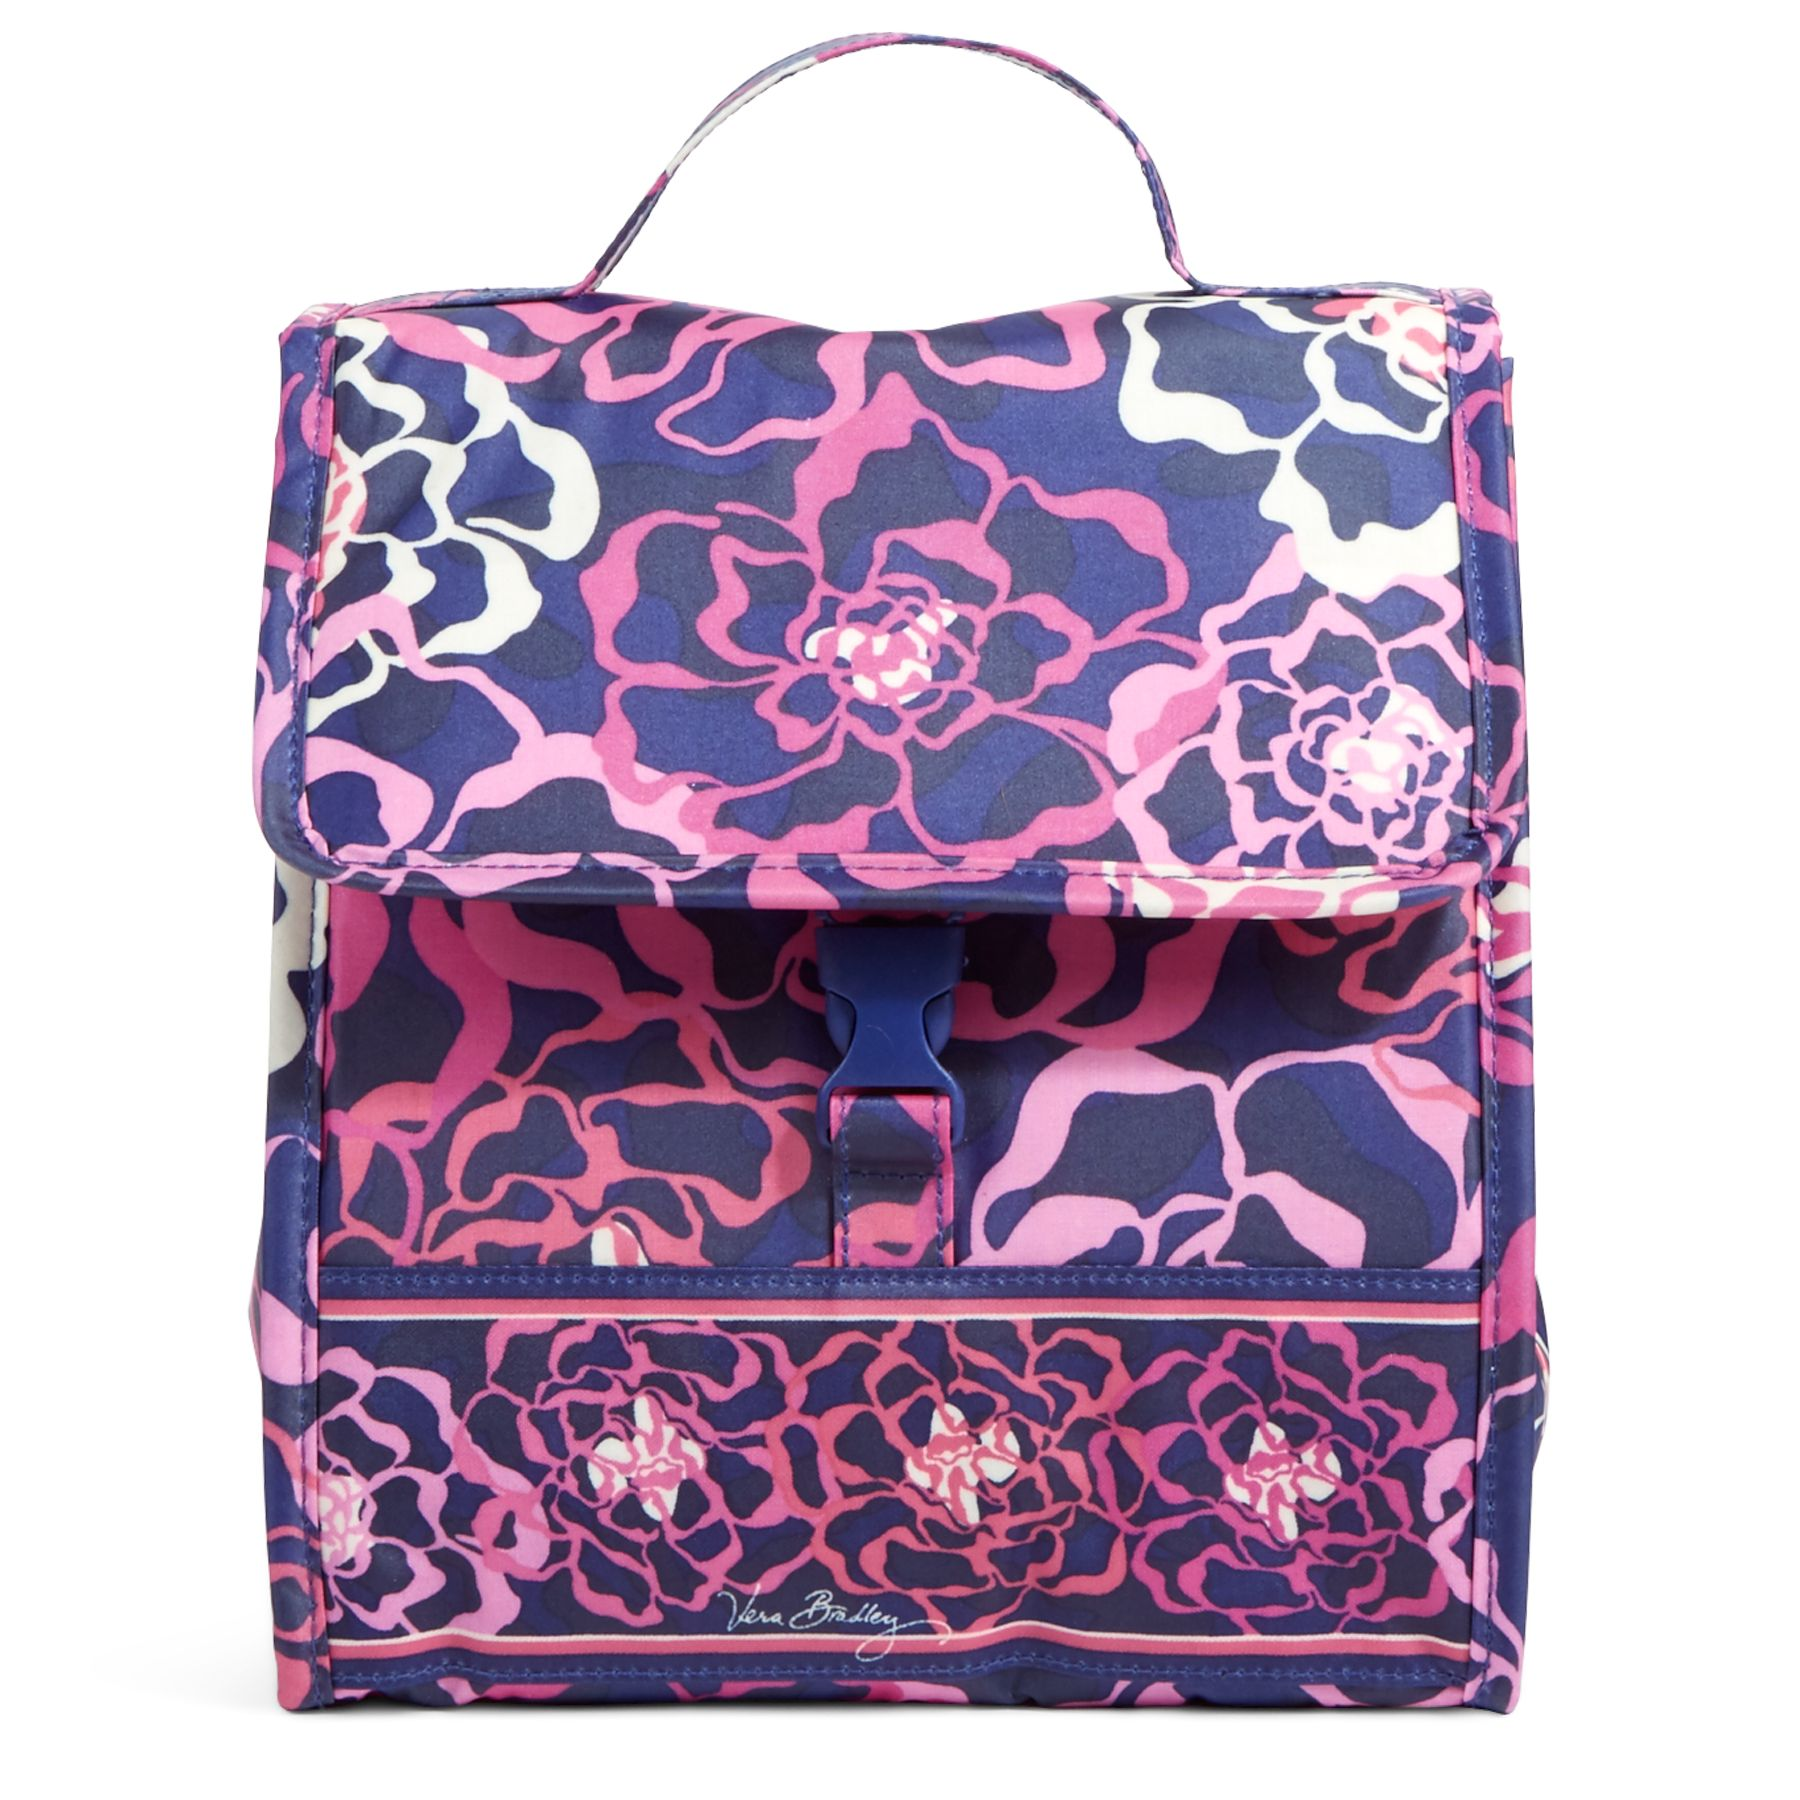 f7a8bf04f6 886003308837. Vera Bradley Lunch Sack Bag in Katalina Pink. EAN-13 Barcode  of UPC 886003308844